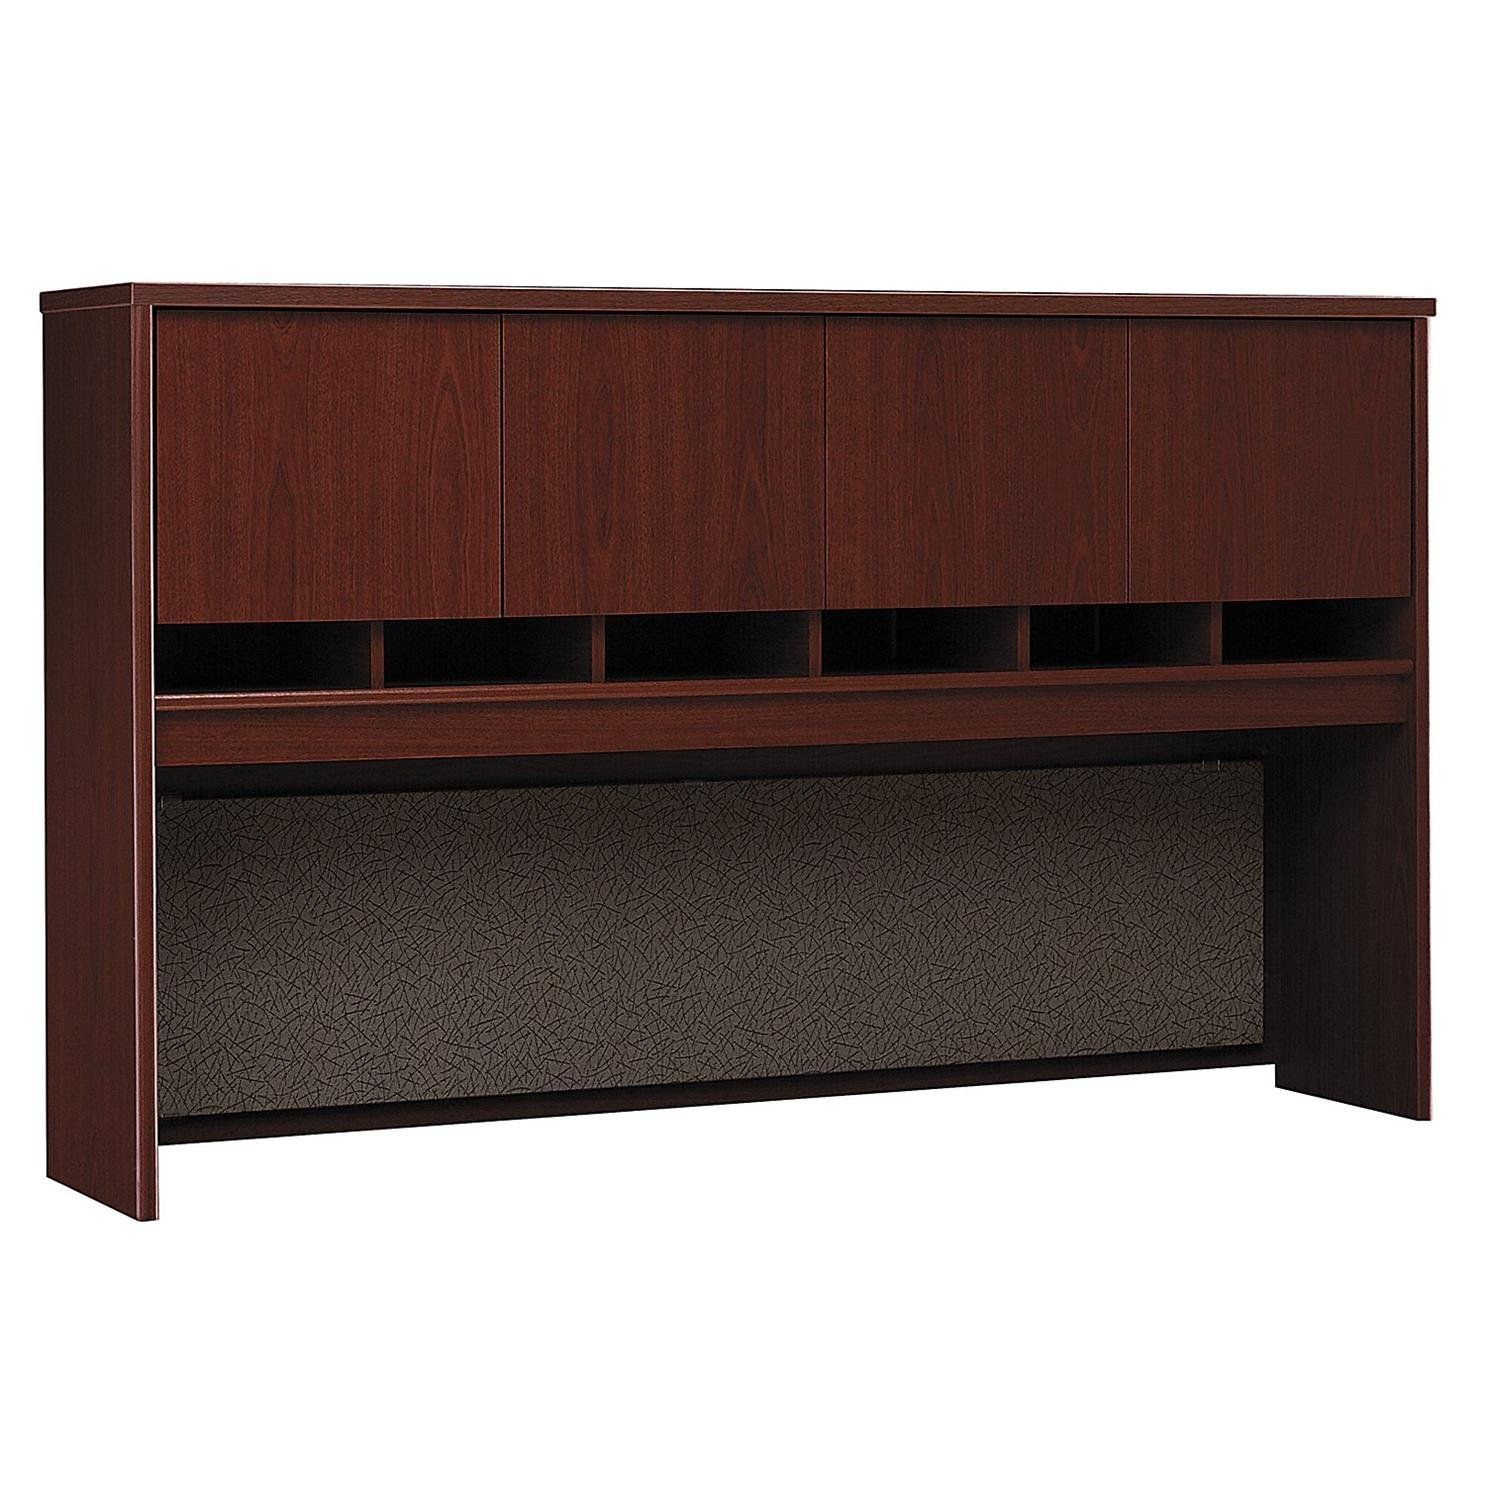 BBF Series C 72W 4 Door Hutch